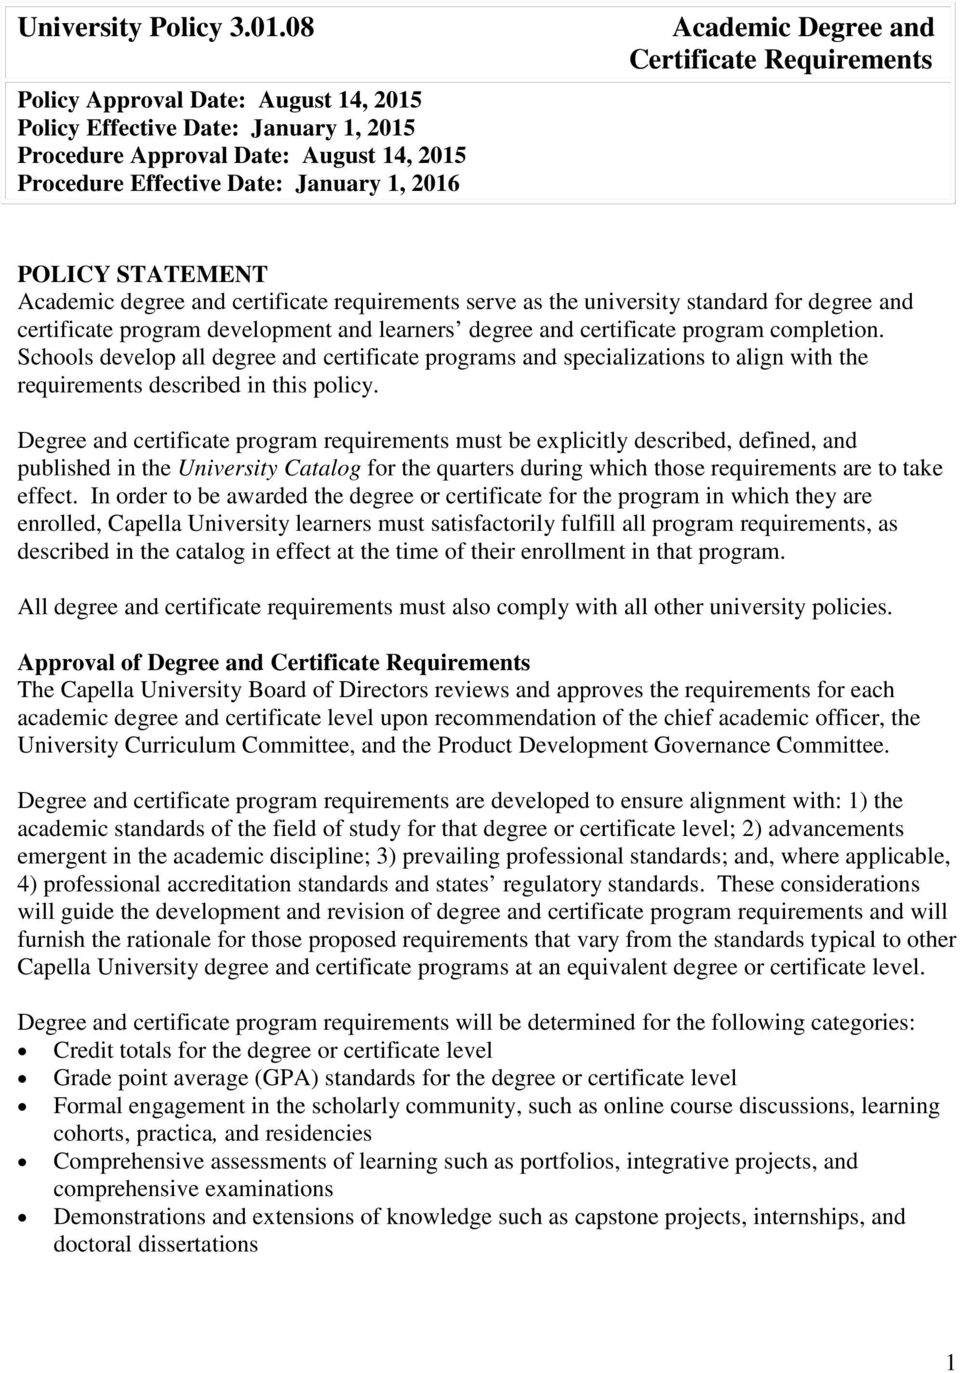 Requirements POLICY STATEMENT Academic degree and certificate requirements serve as the university standard for degree and certificate program development and learners degree and certificate program